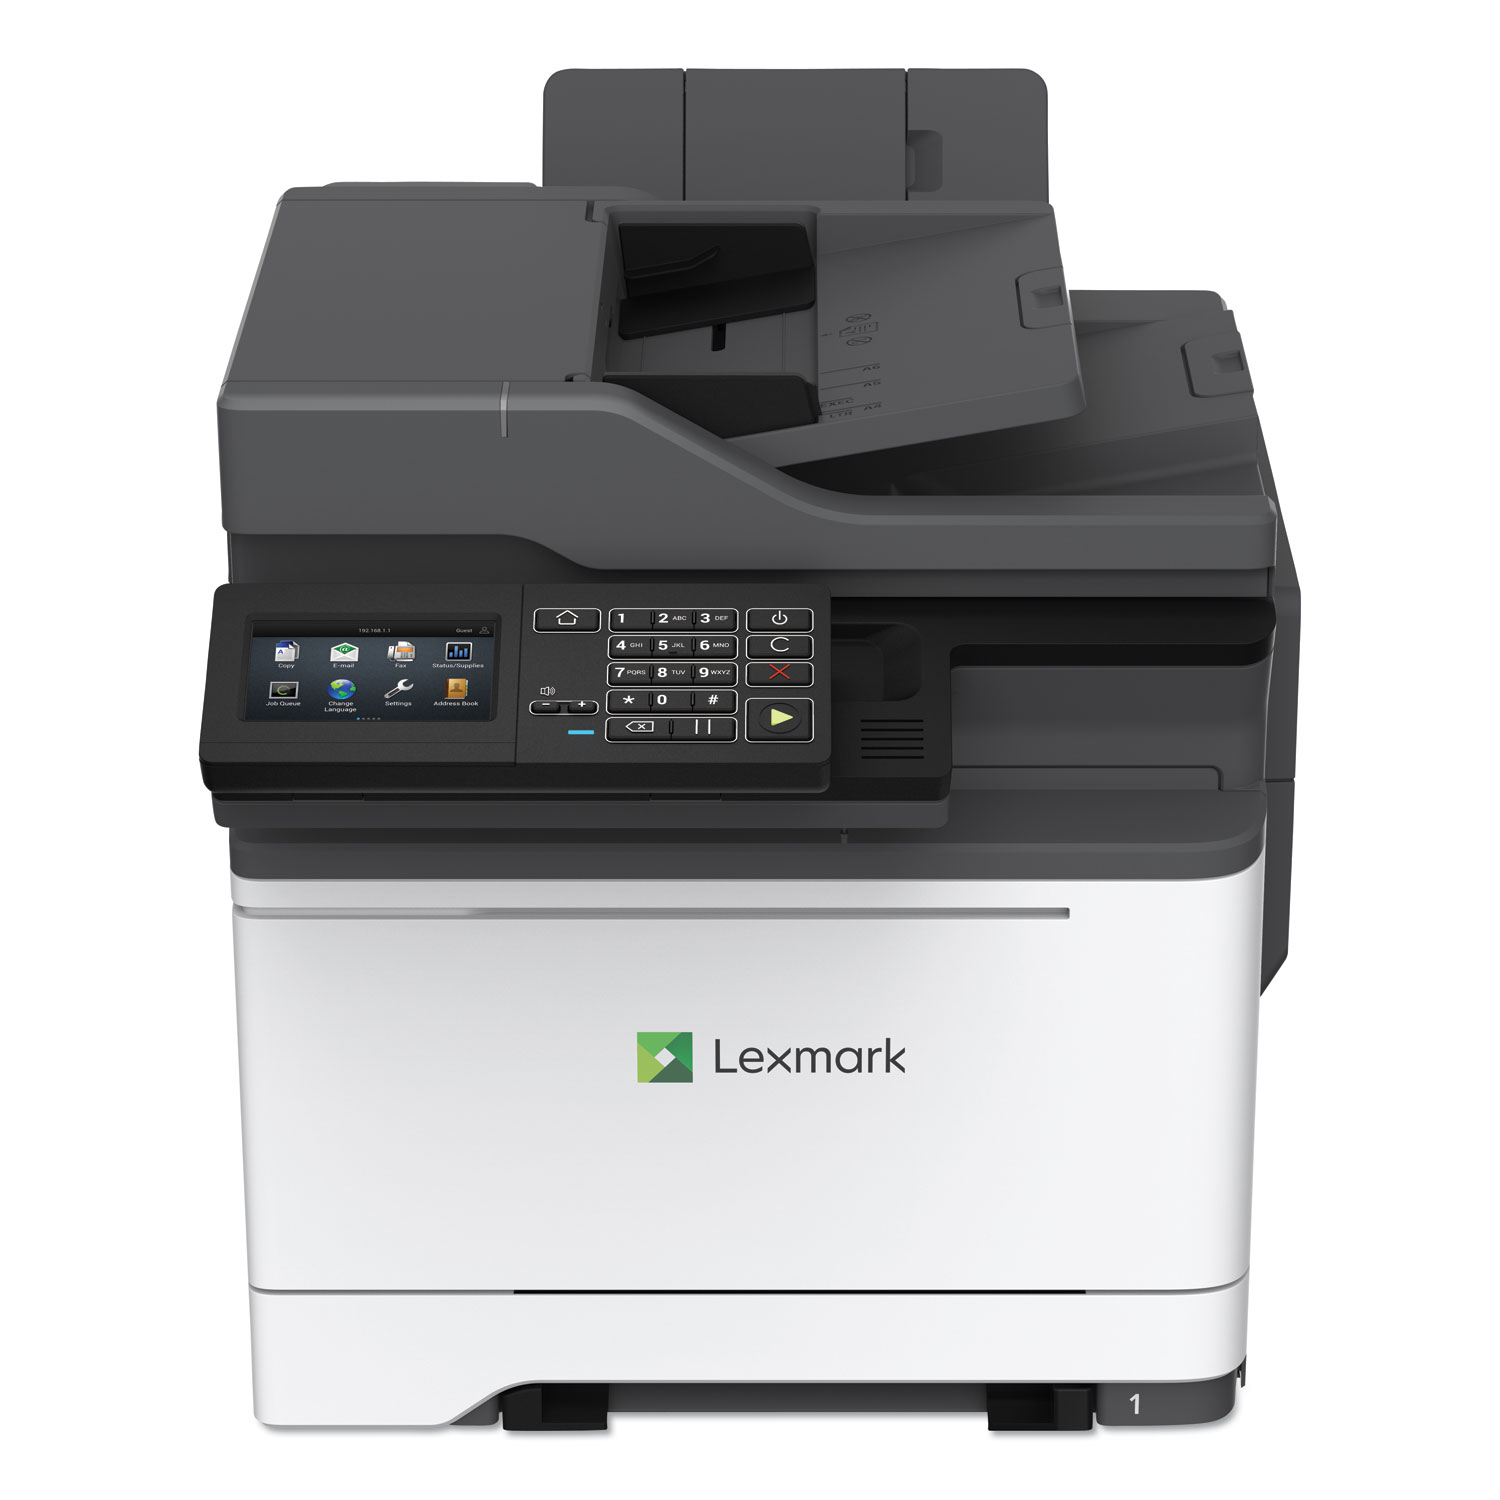 MC2535adwe Printer, Copy/Fax/Print/Scan